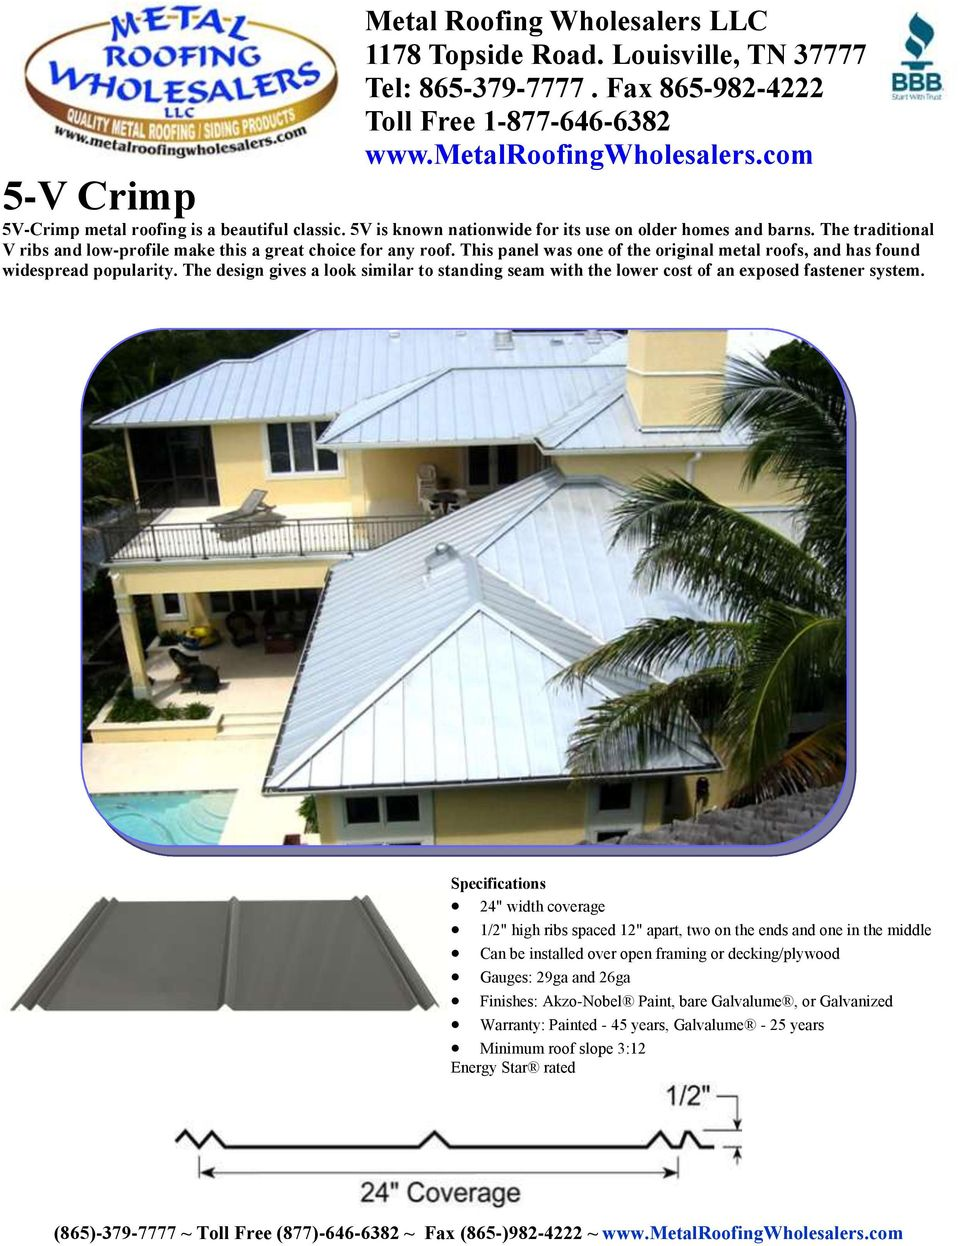 The design gives a look similar to standing seam with the lower cost of an exposed fastener system.